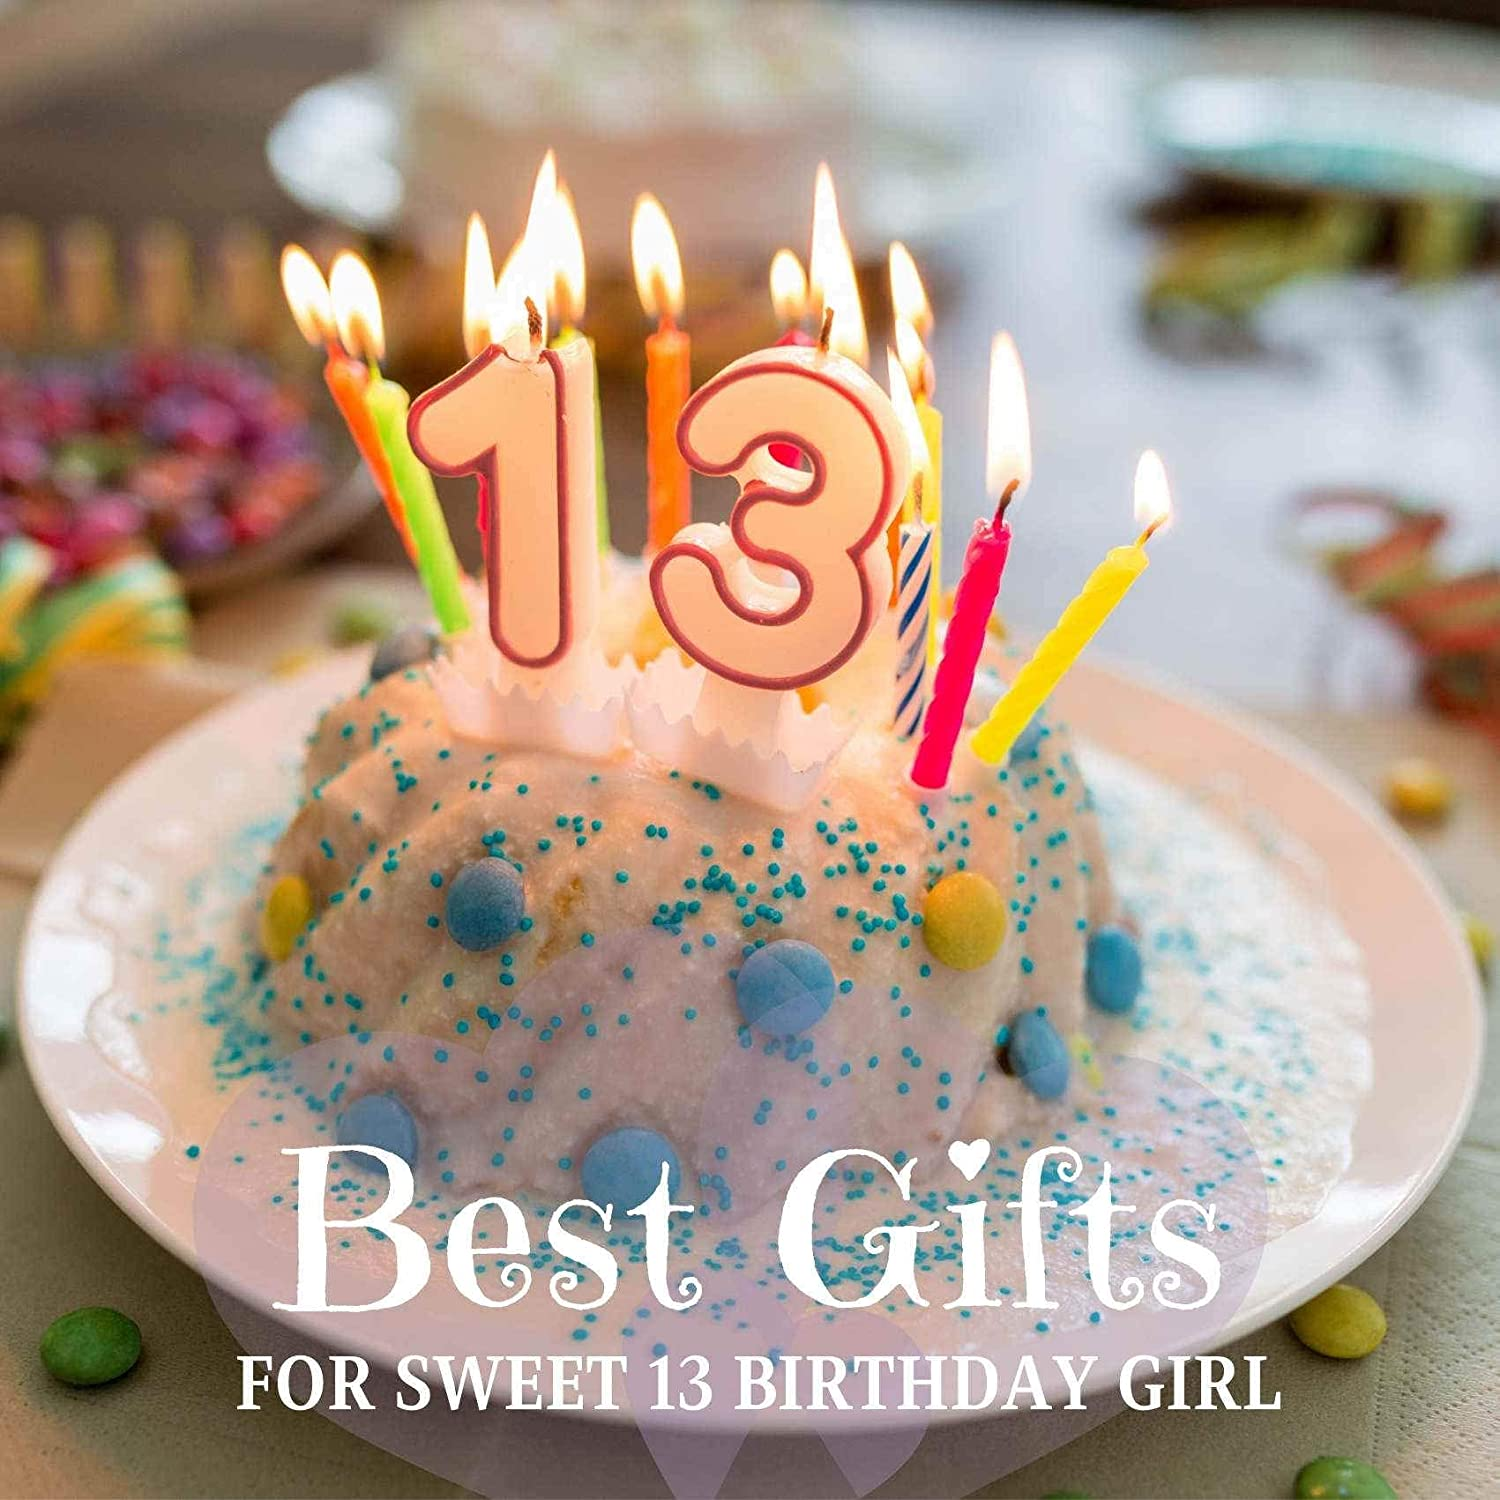 13th Birthday Decorations /& Party Supplies for 13 Years Old Girl /& Her Teen Gifts Violet-Blue Gradient Glitter 13th Birthday Girl Gifts 17oz//500ml Stainless Steel Insulated Water Bottle Teenager Gifts Perfect for Birthday Back to School